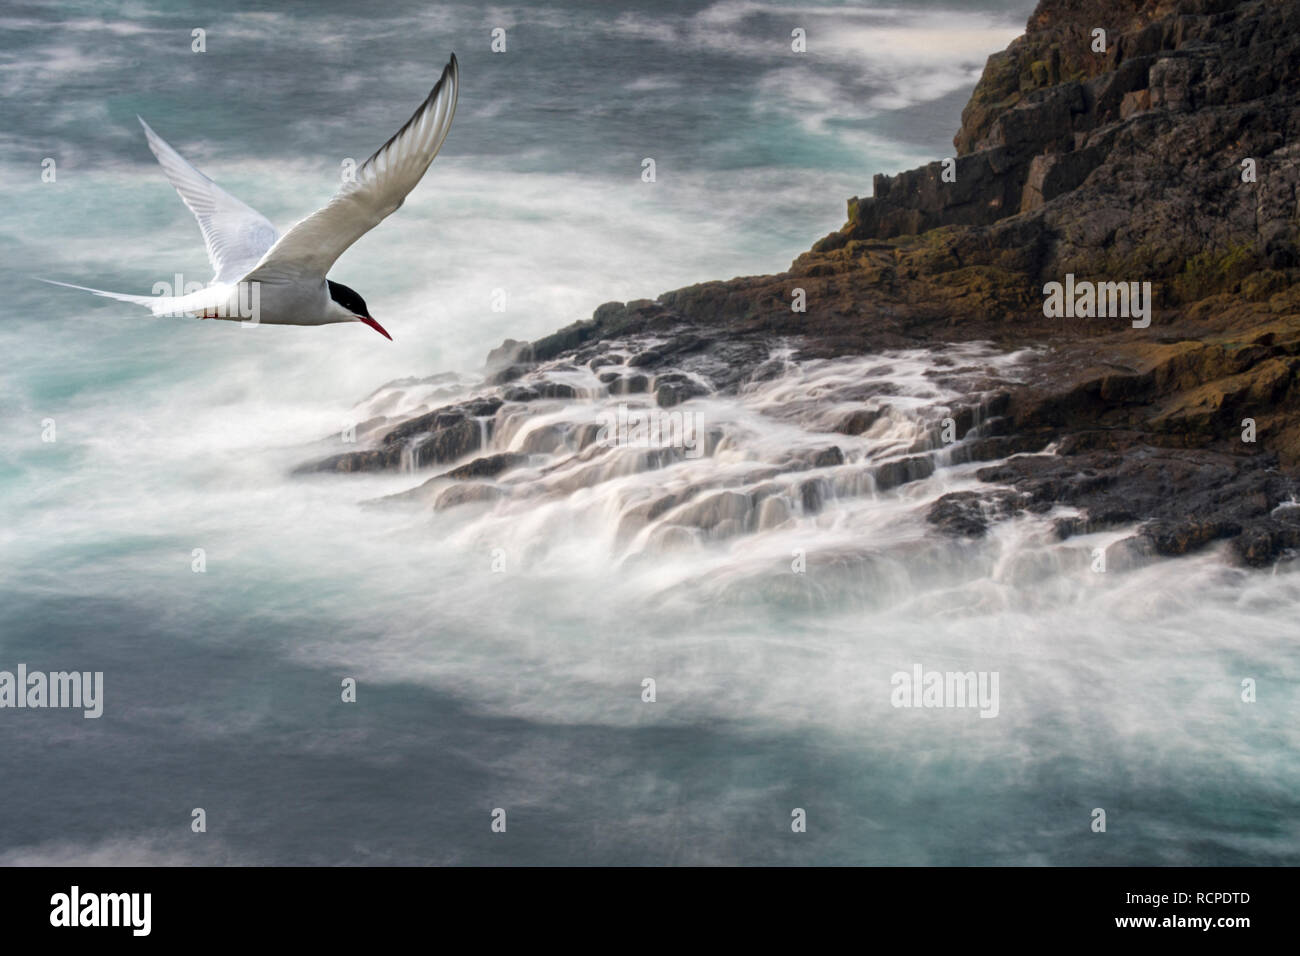 Migrating Arctic tern (Sterna paradisaea) flying over waves crashing on rocks of sea cliff in spring, Shetland Islands, Scotland, UK - Stock Image